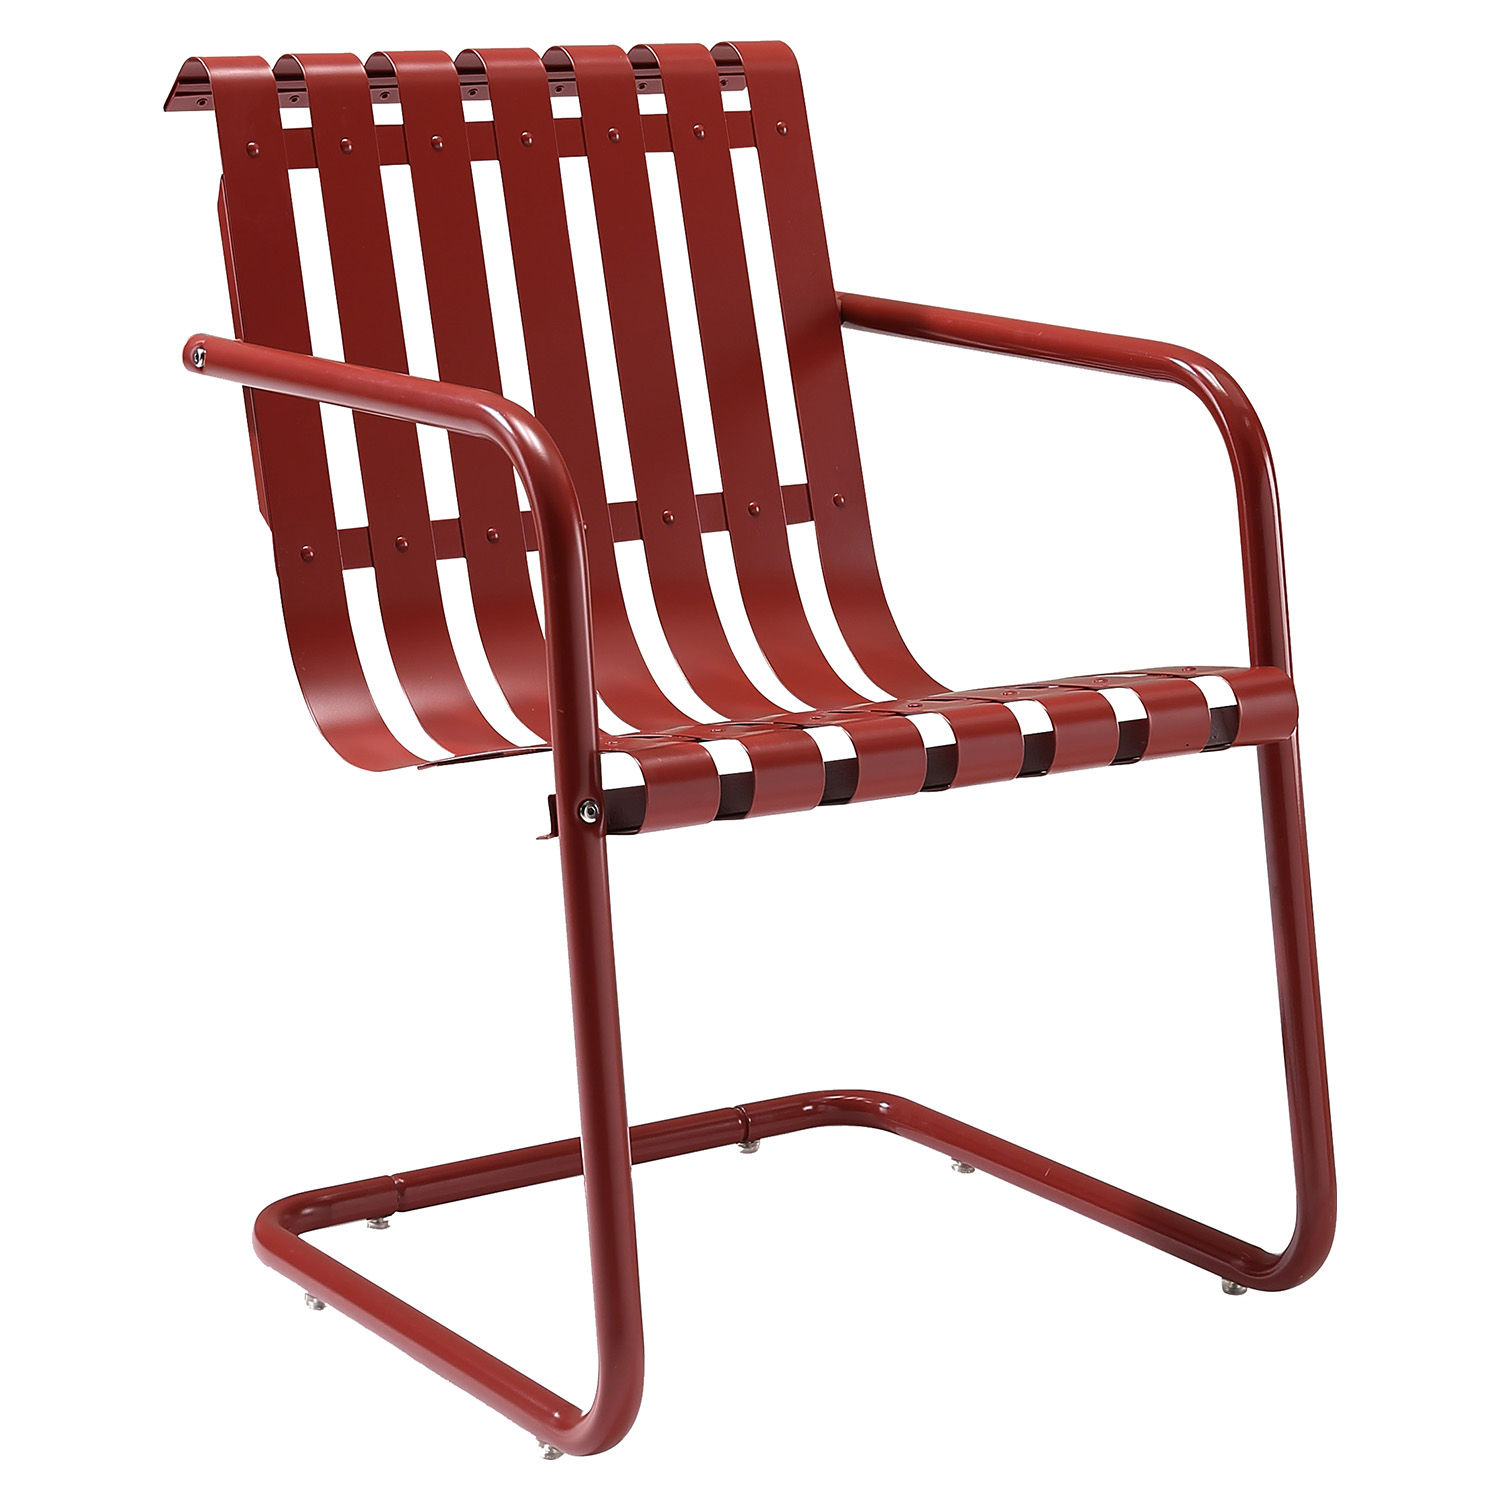 Gracie Retro Spring Chair - Coral Red - CROS-CO1006A-RE